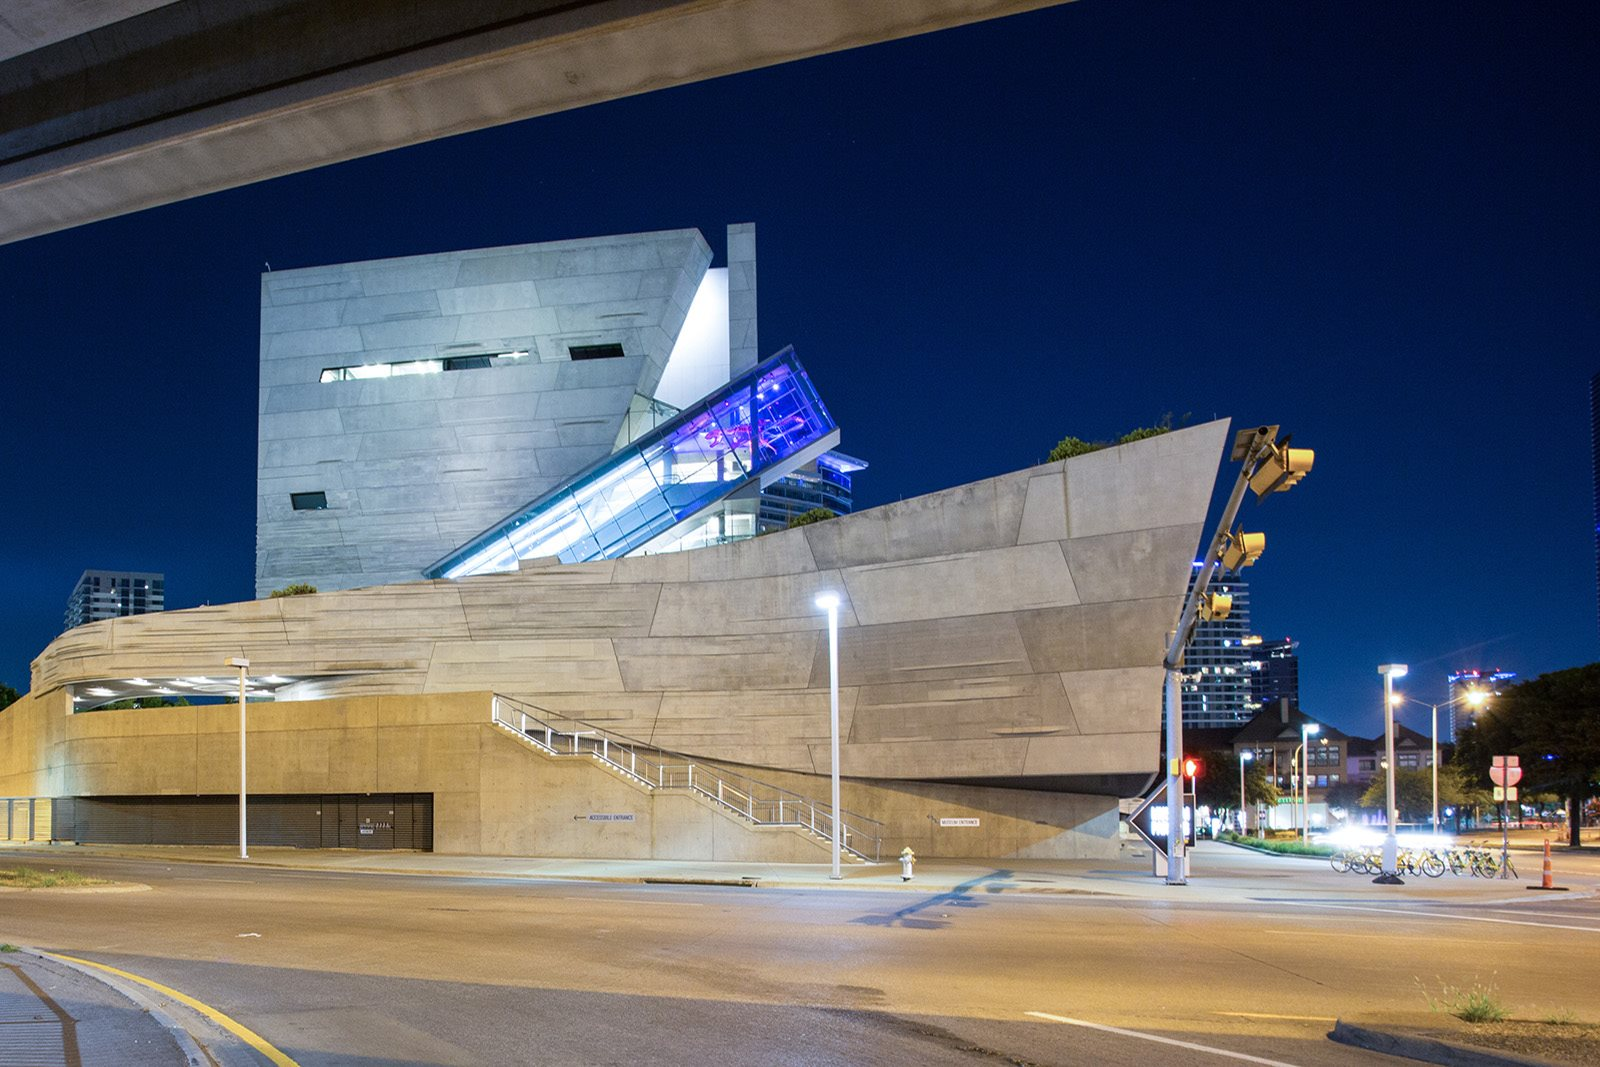 Perot Museum of Nature and Science near Trianon by Windsor, 2820 McKinnon Street, TX